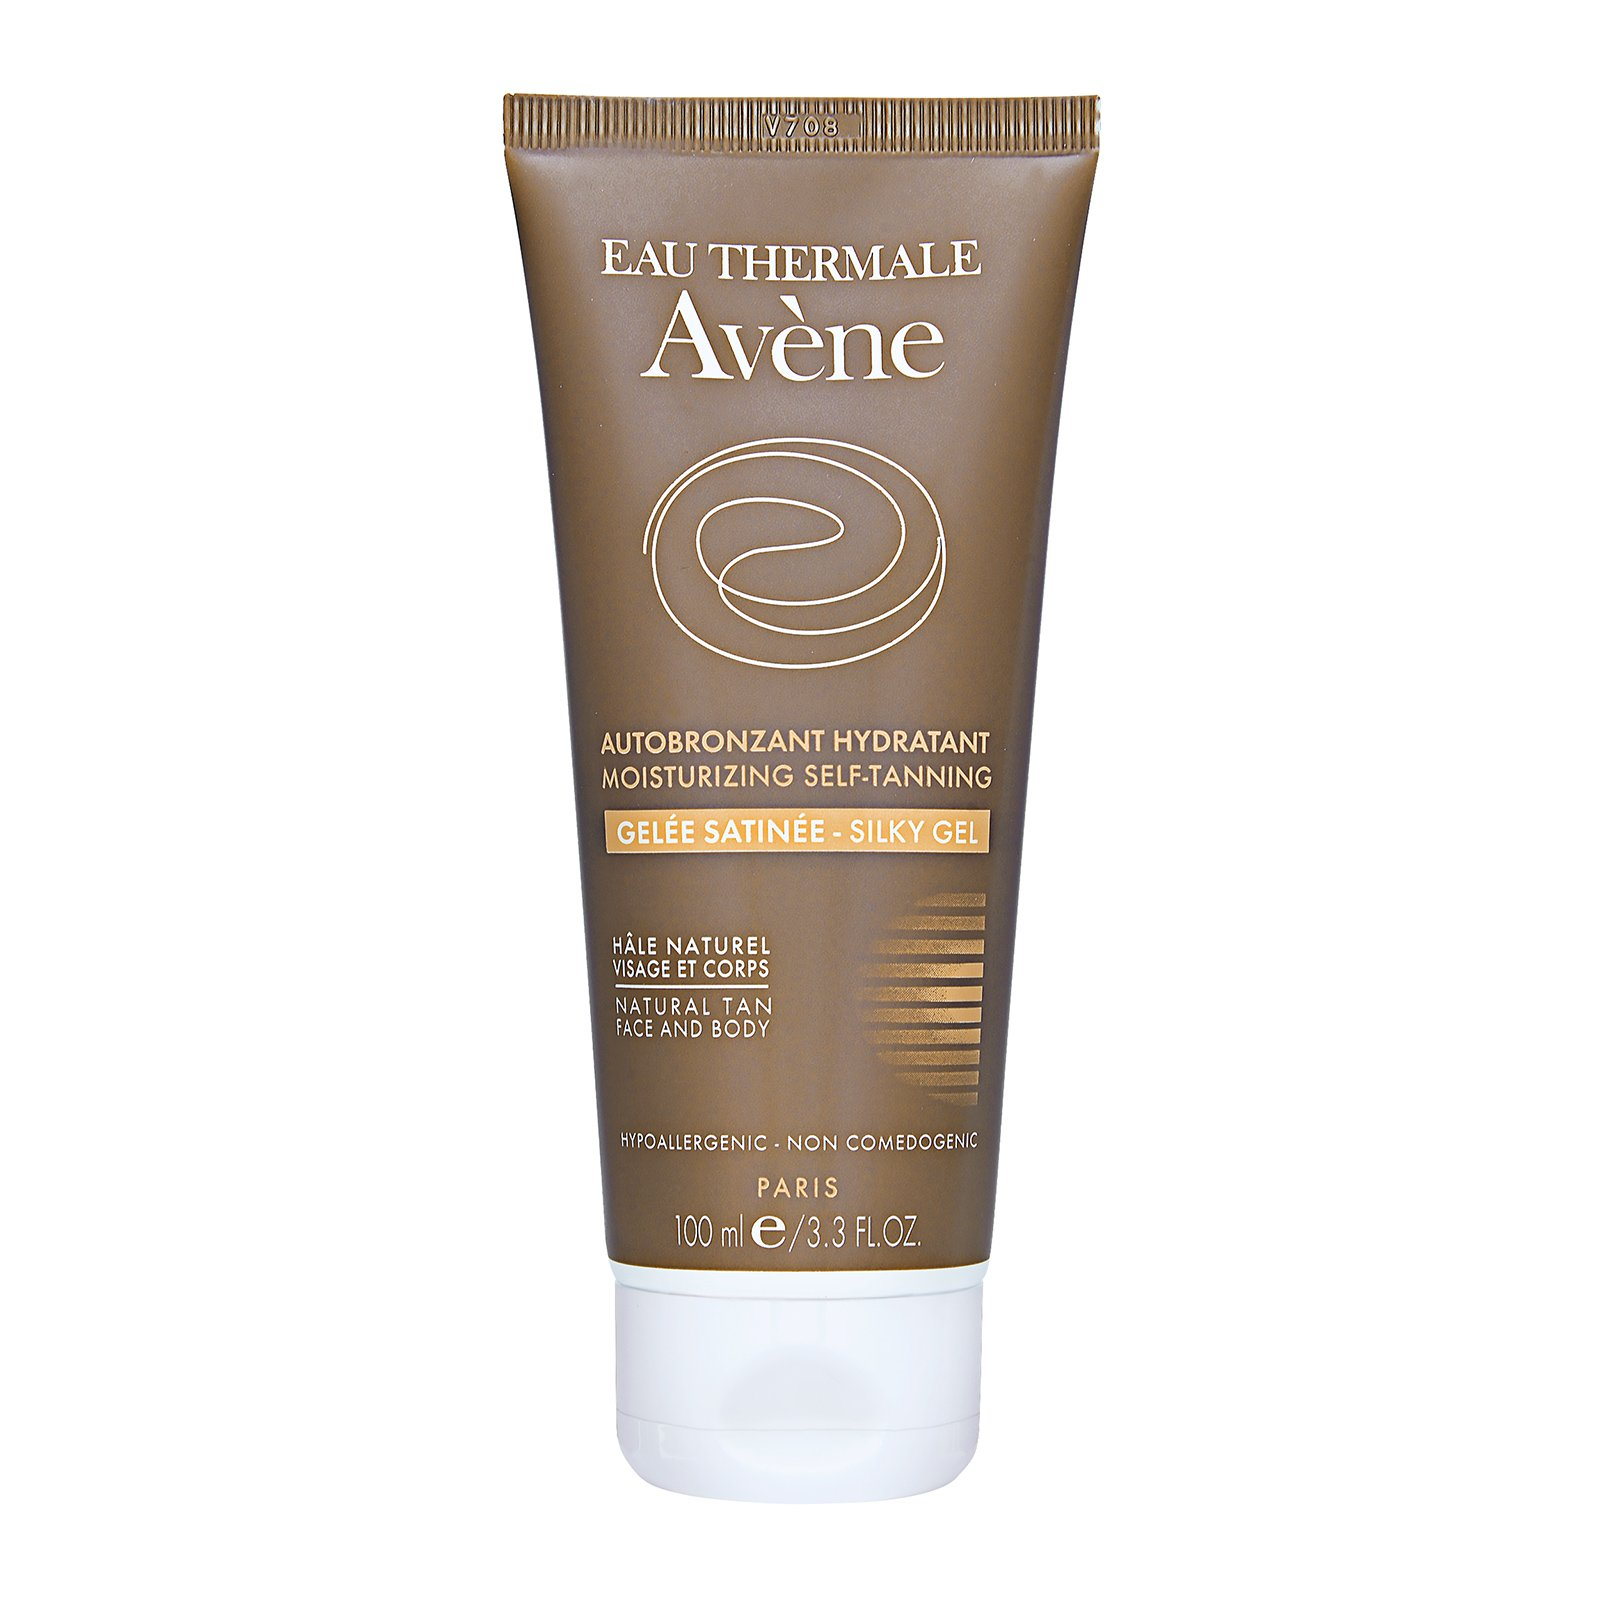 Avène  Autobronzant Hydratant Moisturizing Self-Tanning Silky Gel (For Sensitive Skin)  3.3oz, 100ml from Cosme-De.com